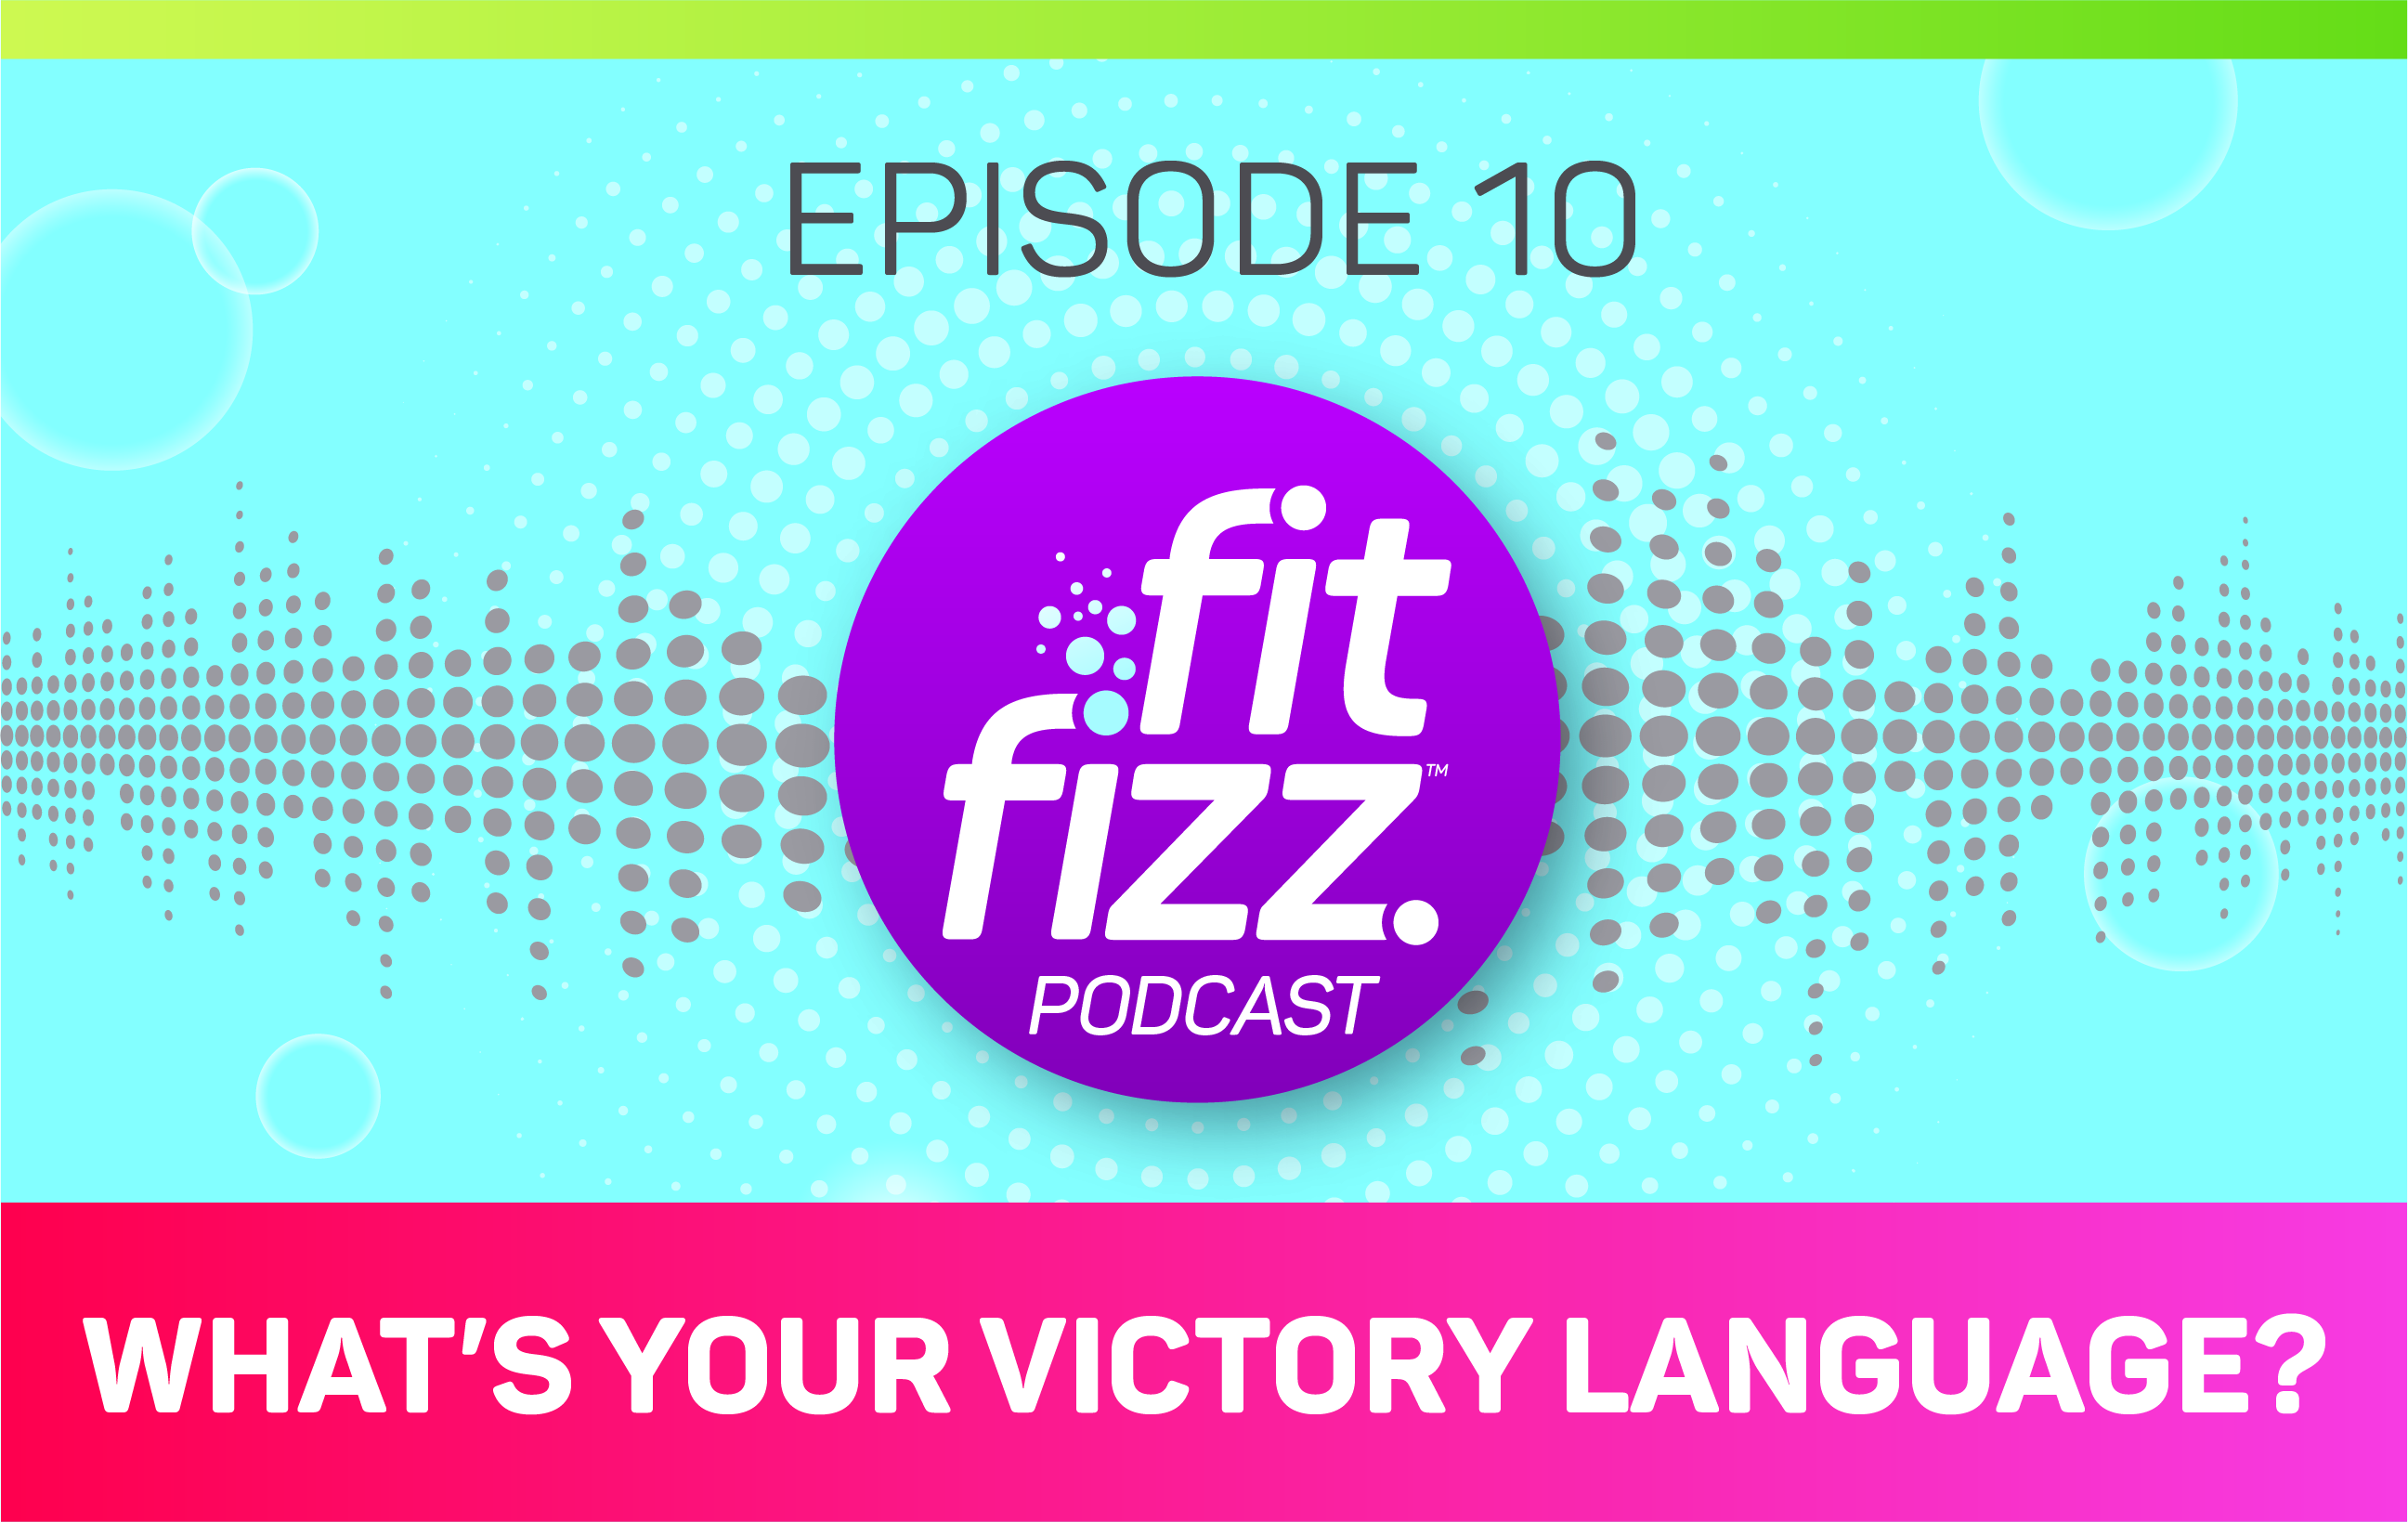 Podcast Episode 10: What's Your Victory Language?